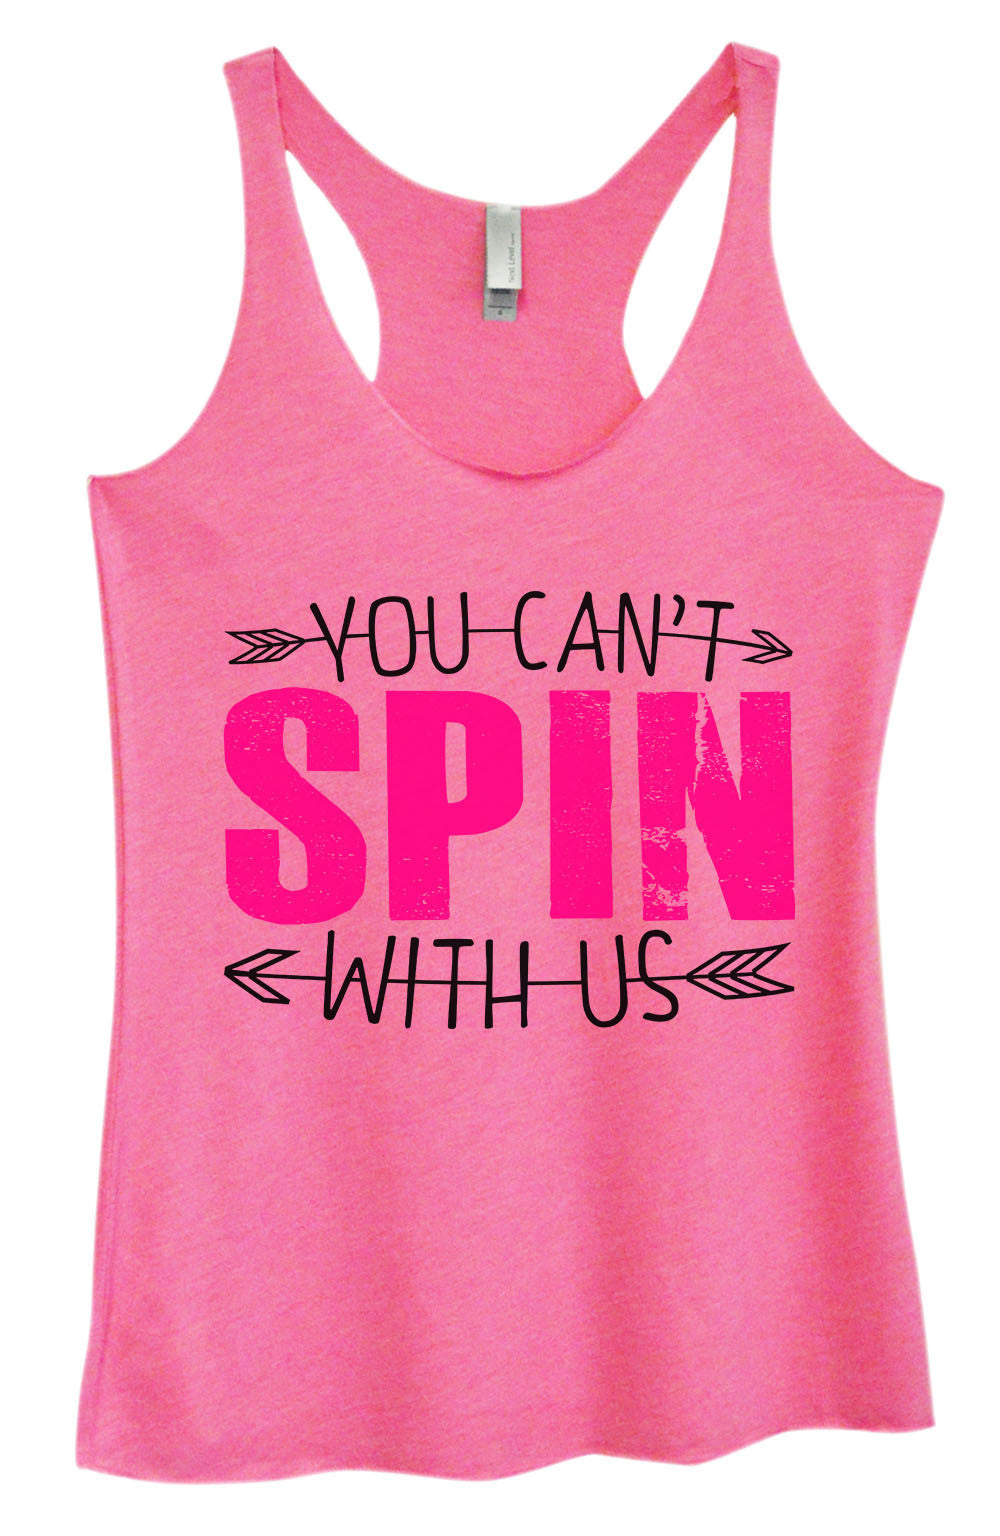 Womens Fashion Triblend Tank Top - You Can't Spin With Us - Tri-1356 - Funny Shirts Tank Tops Burnouts and Triblends  - 4